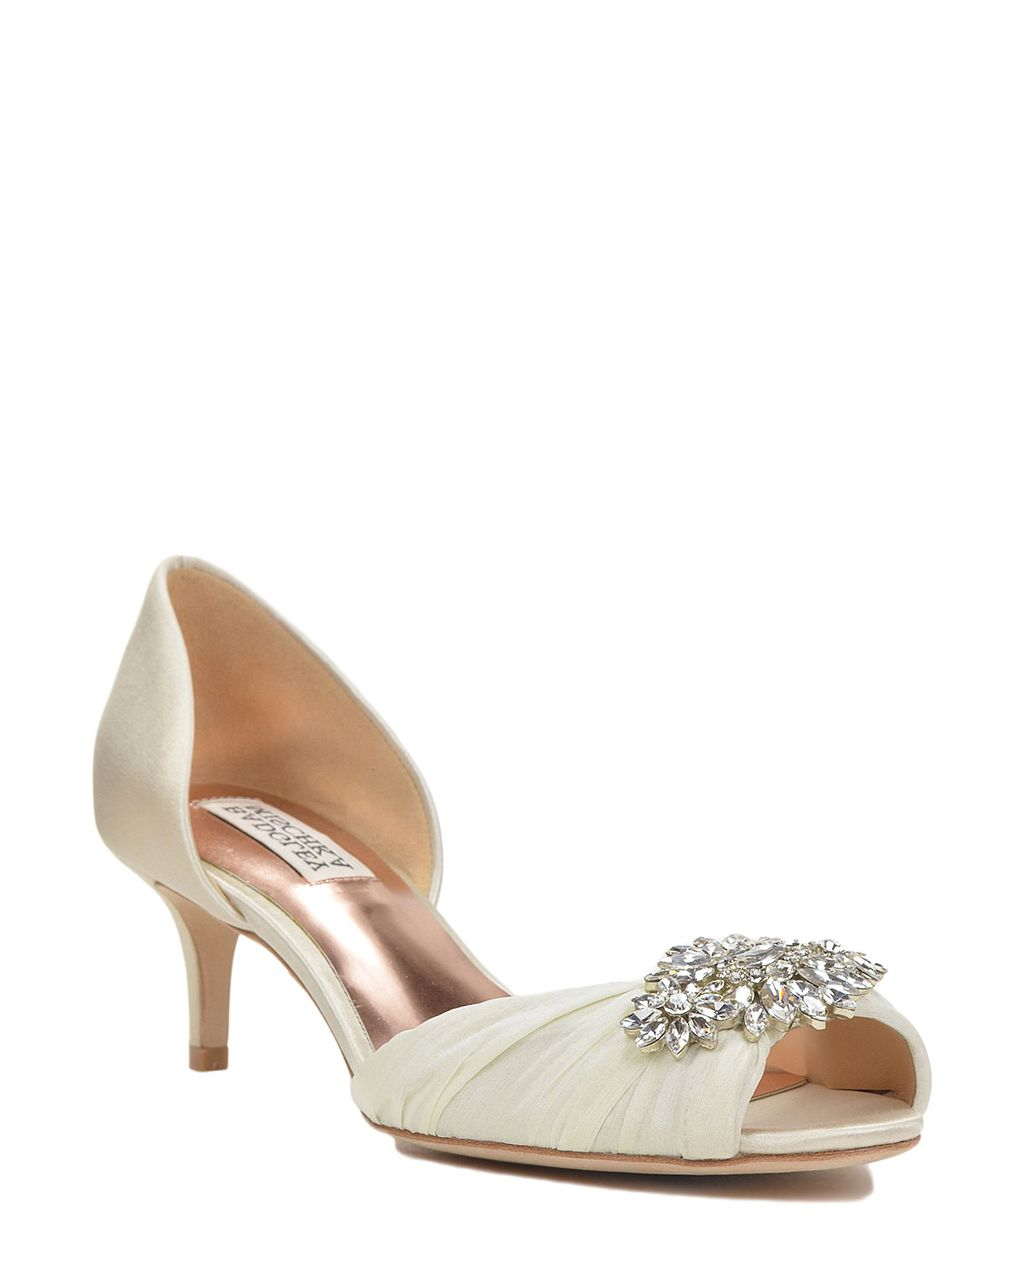 CAITLIN by Badgley Mischka James Ciccotti Bridal Shoes & Accessories